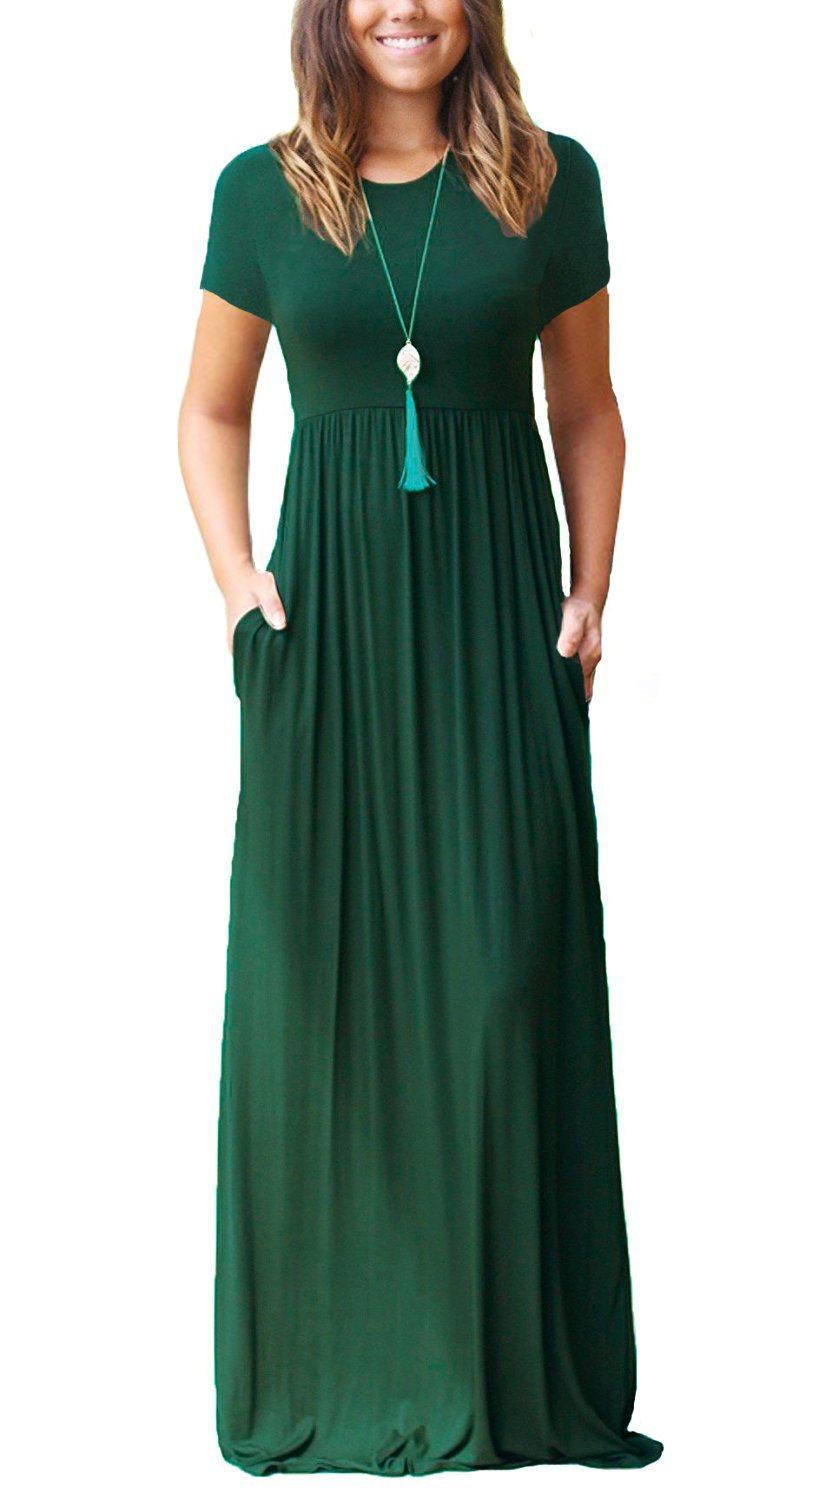 HIYIYEZI Women's Short Sleeve Loose Plain Maxi Dresses Casual Long Dresses with Pockets (L, 02 Dark Green- Short Sleeves)